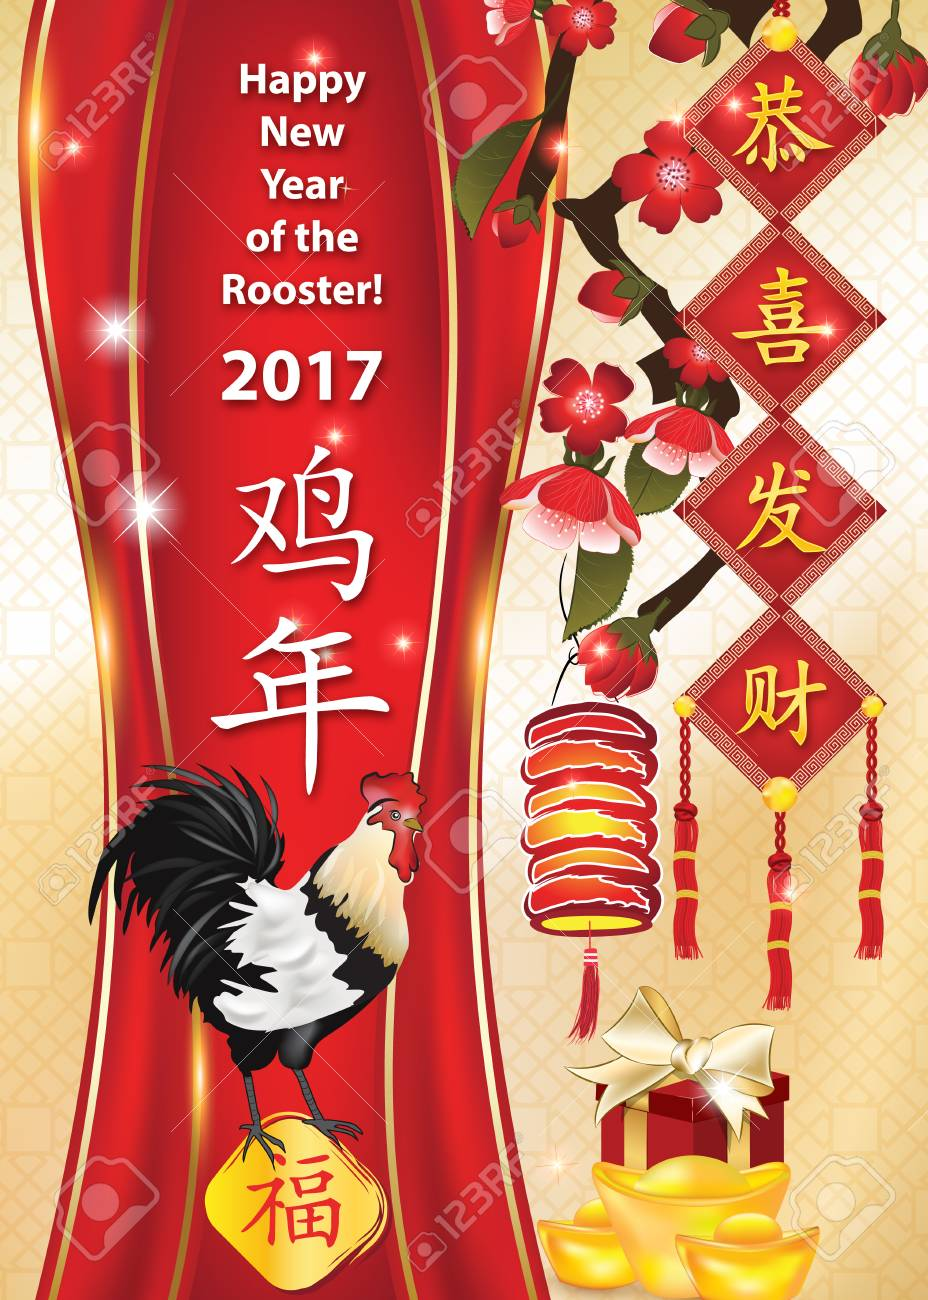 Chinese new year of the rooster 2017 printable greeting card chinese new year of the rooster 2017 printable greeting card chinese characters m4hsunfo